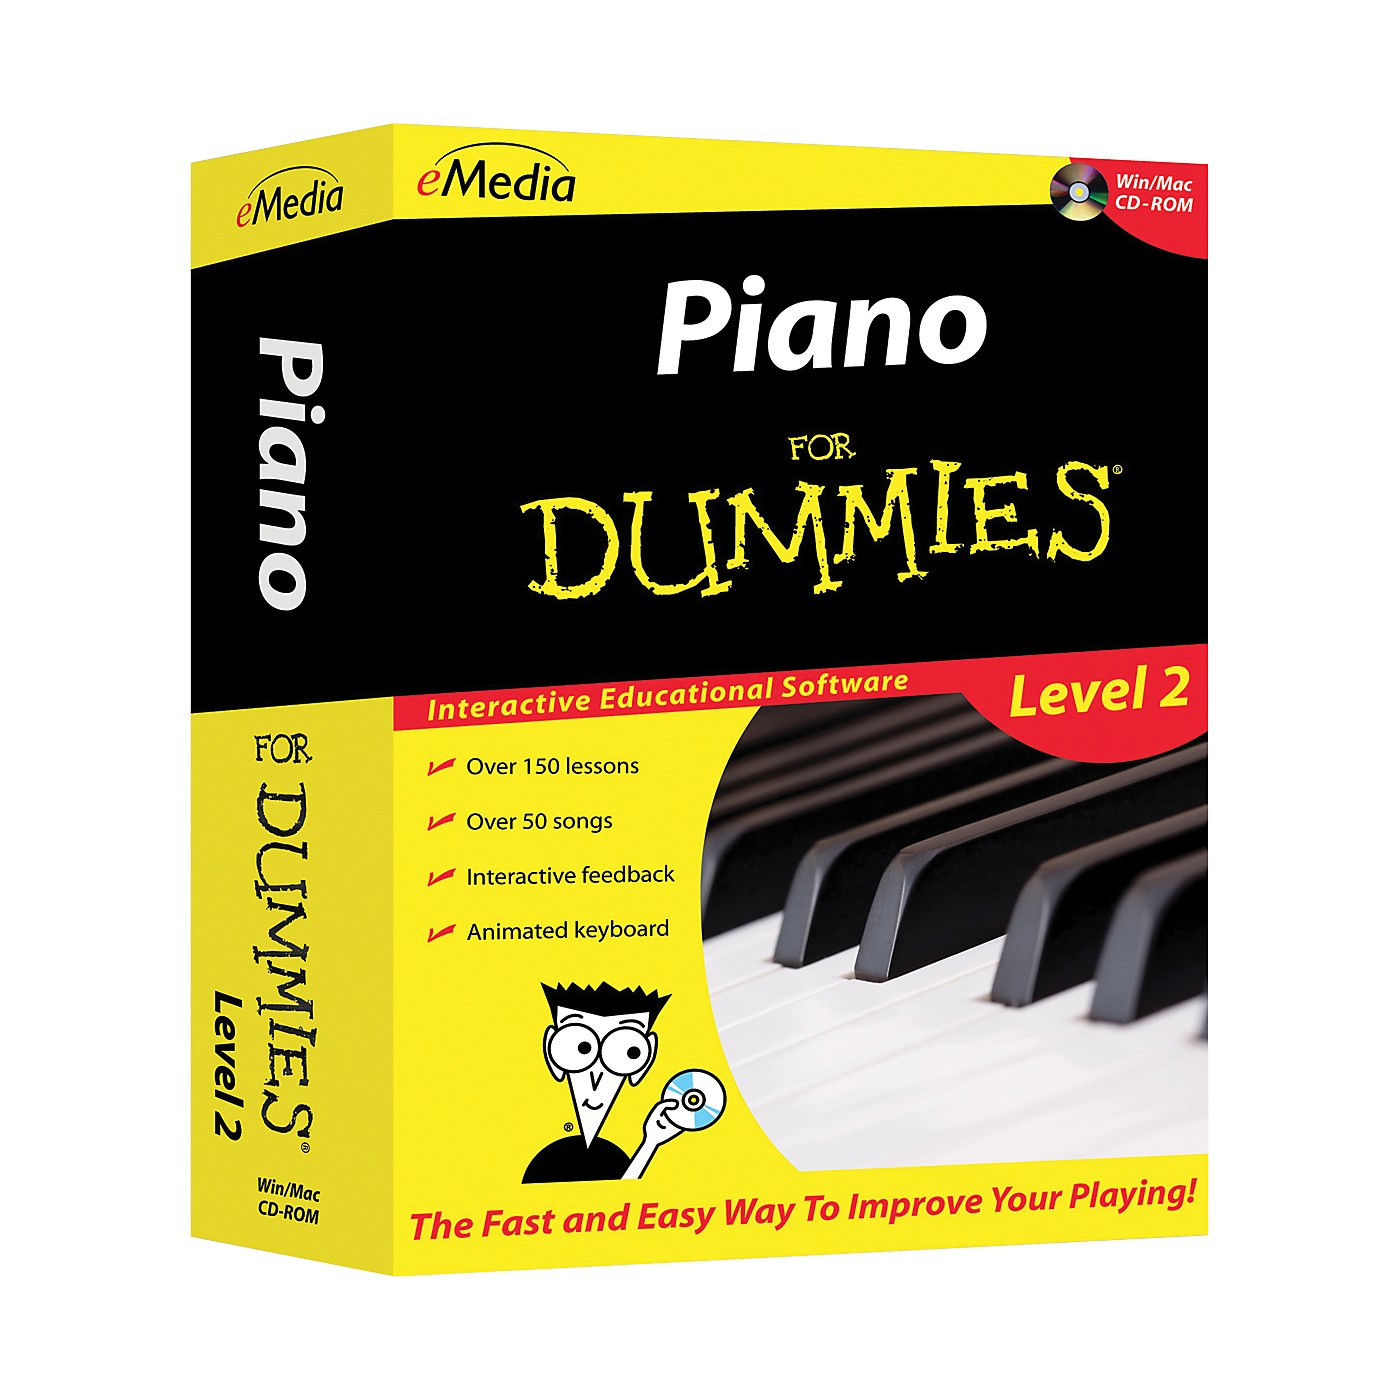 eMedia Piano For Dummies Level 2 - CD-ROM thumbnail